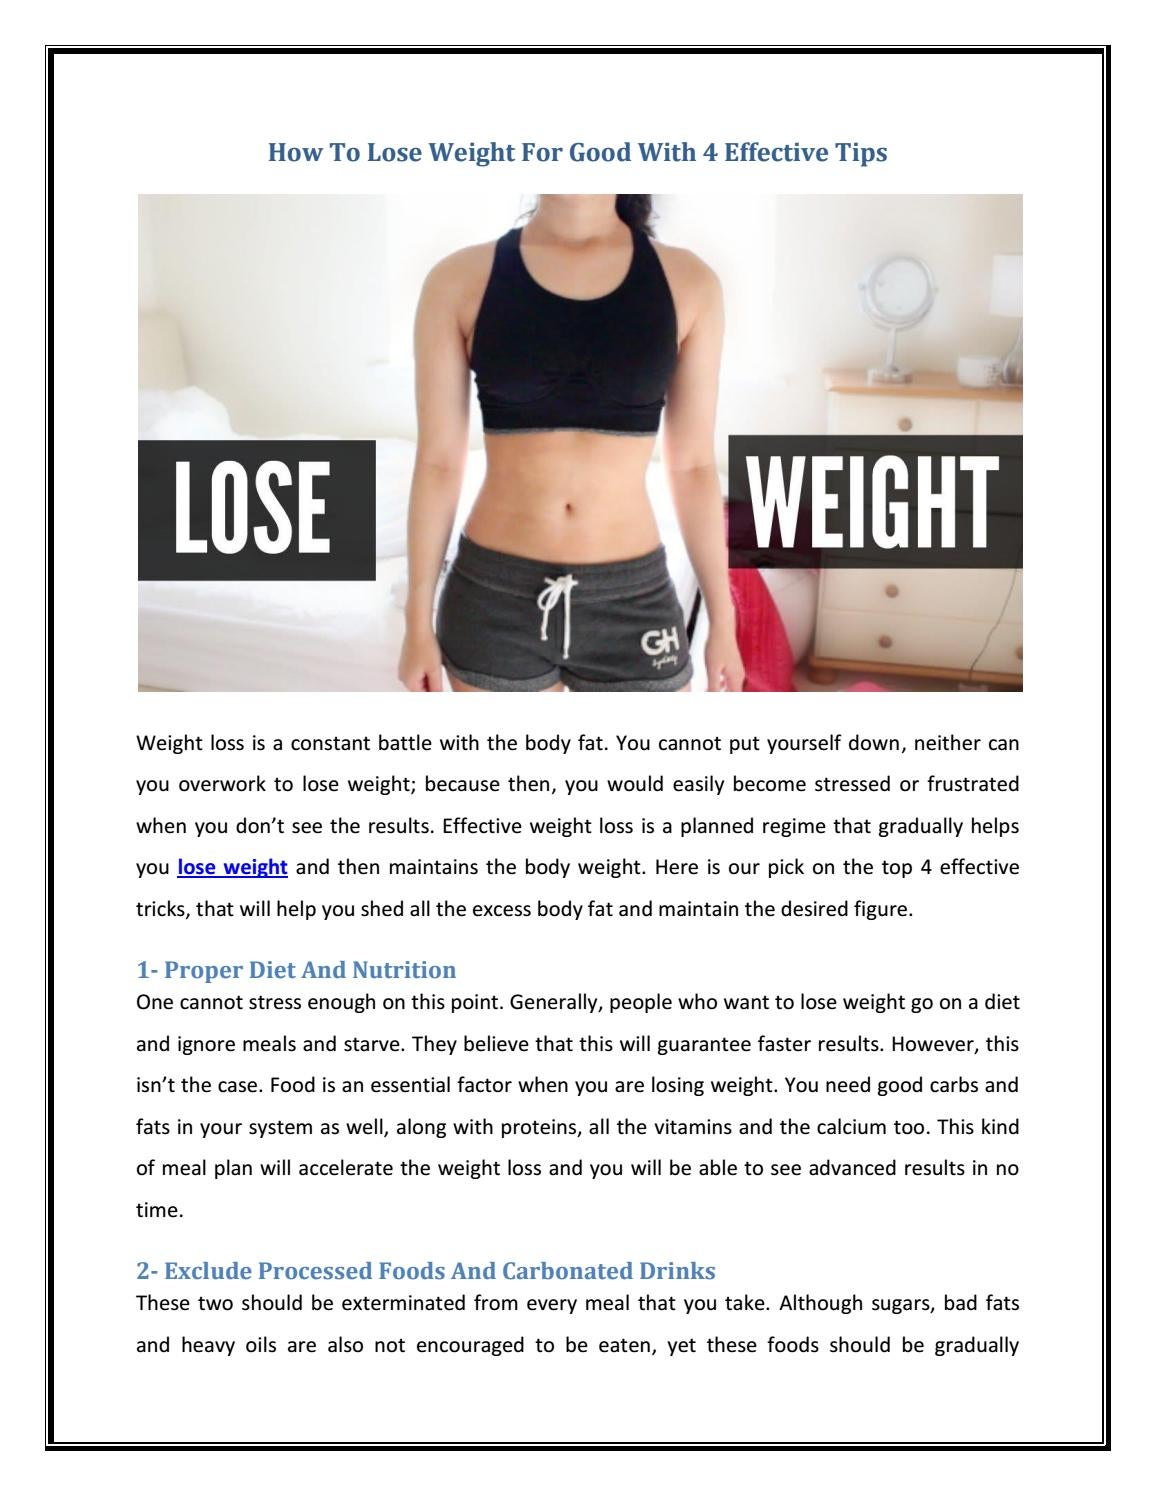 How To Lose Weight For Good With 4 Effective Tips By Diva Squad